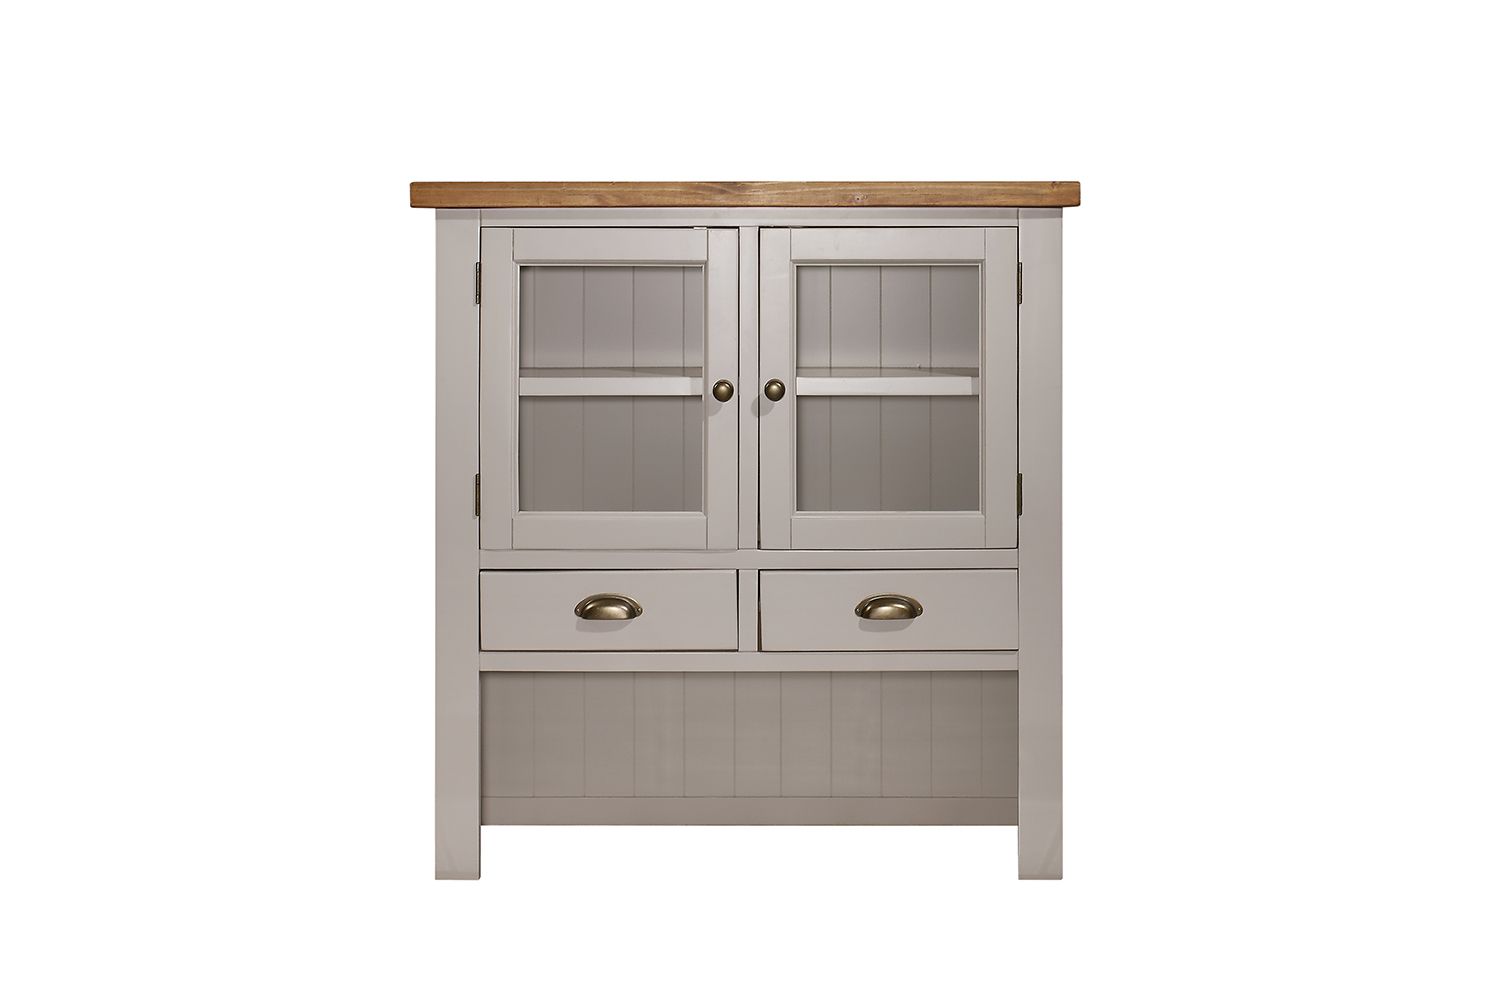 Kitchen hutch - £420.00 - size - 105 x 34 x 110cm - inches - 41 x 13 x 43